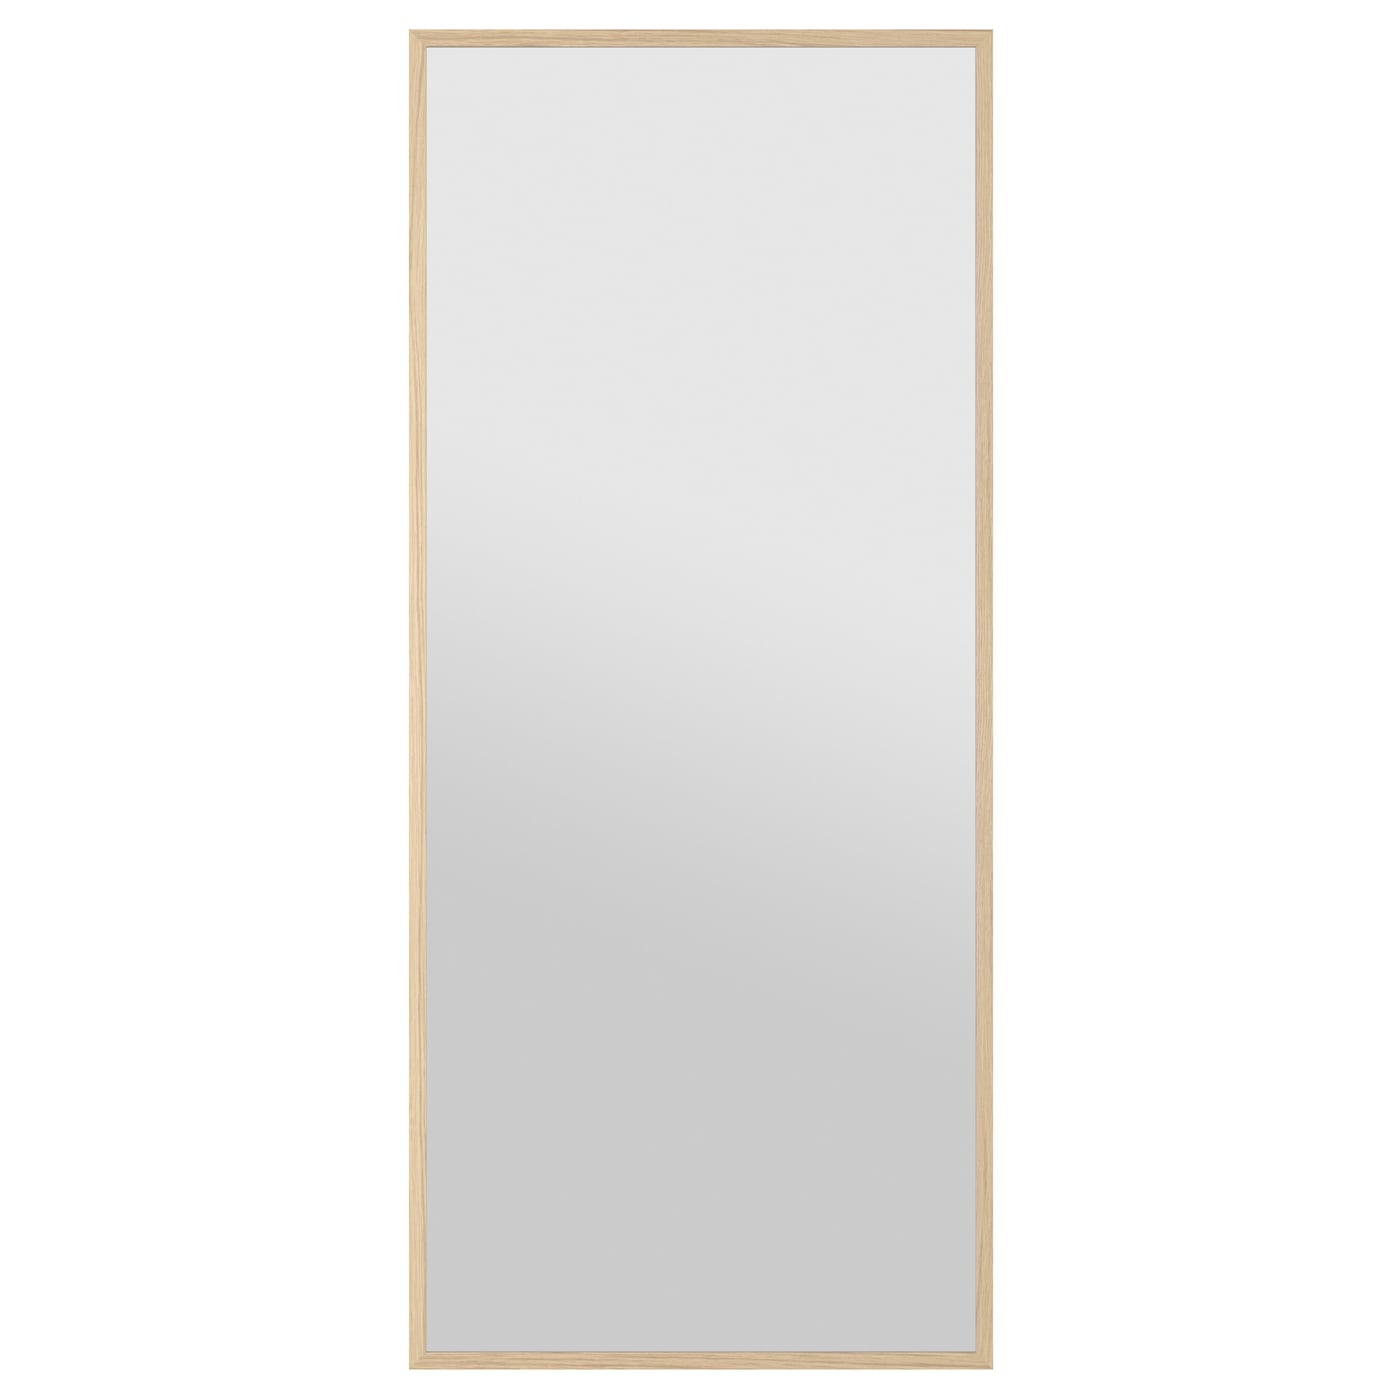 stave mirror white stained oak effect 70x160 cm ikea. Black Bedroom Furniture Sets. Home Design Ideas